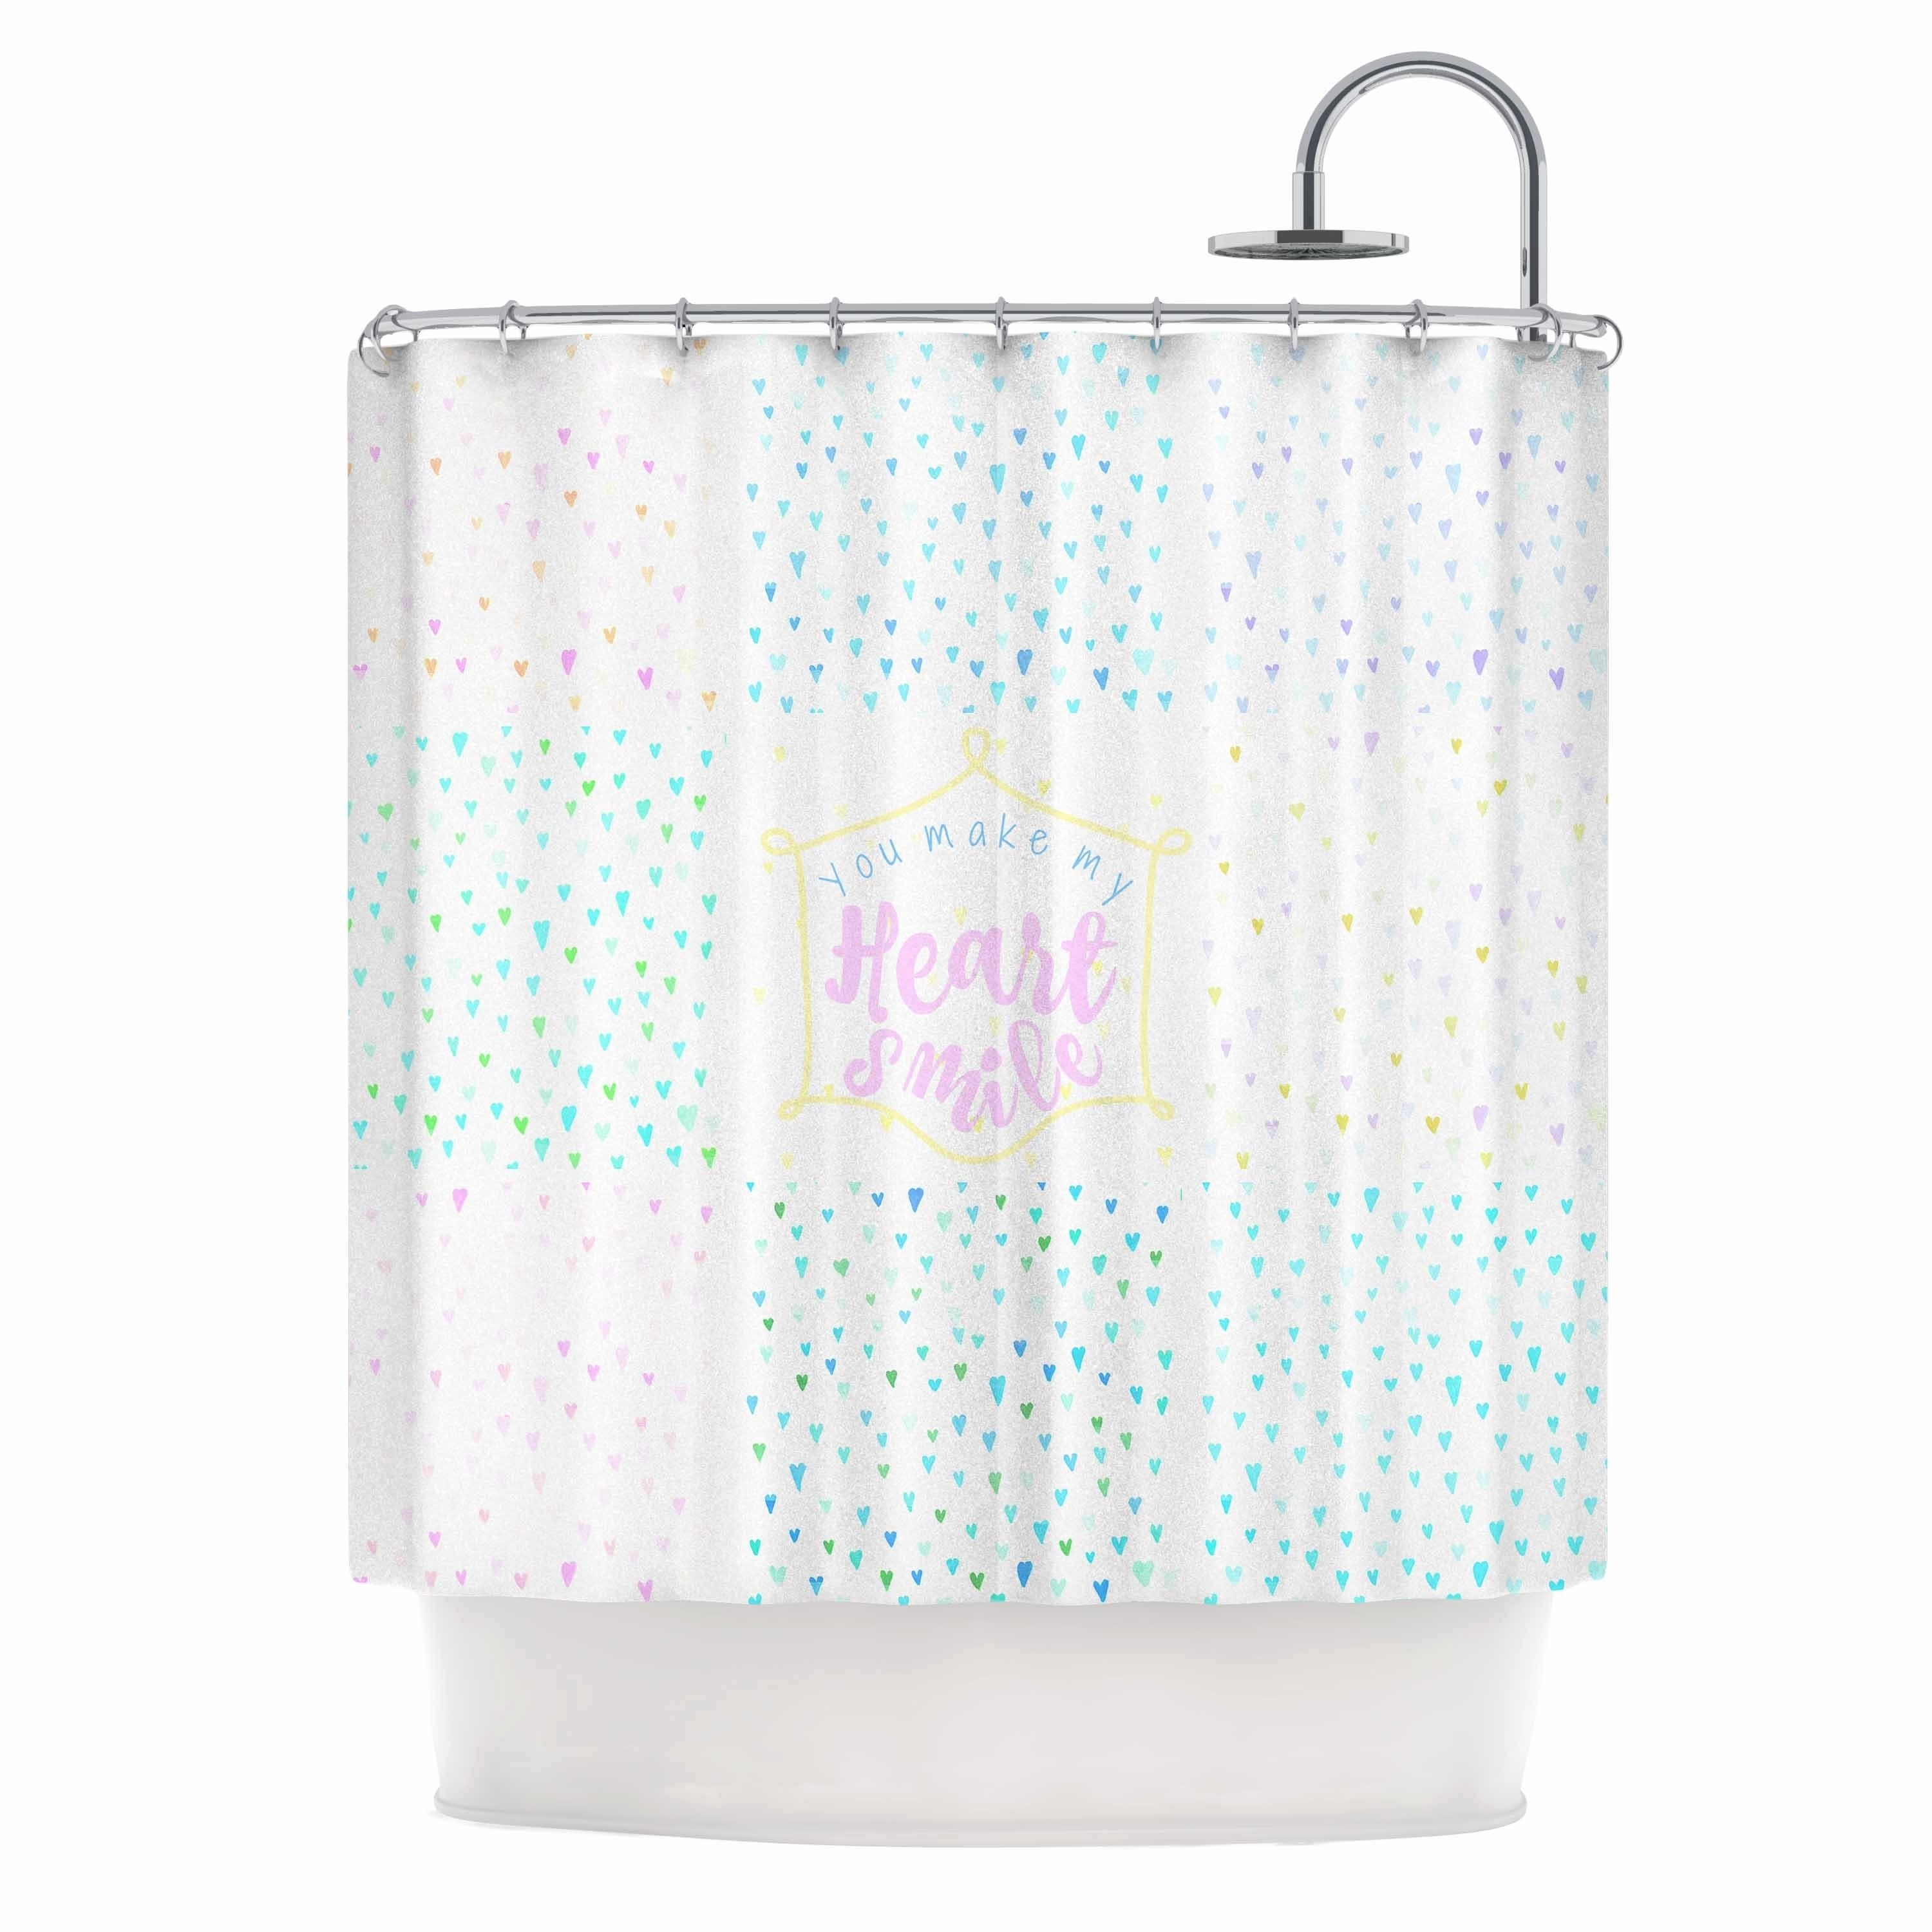 Kess Inhouse Qing Ji Love Is All We Need Teal Black Shower Curtain Shower Curtains Hooks Liners 69 By 70 Home Kitchen Bath